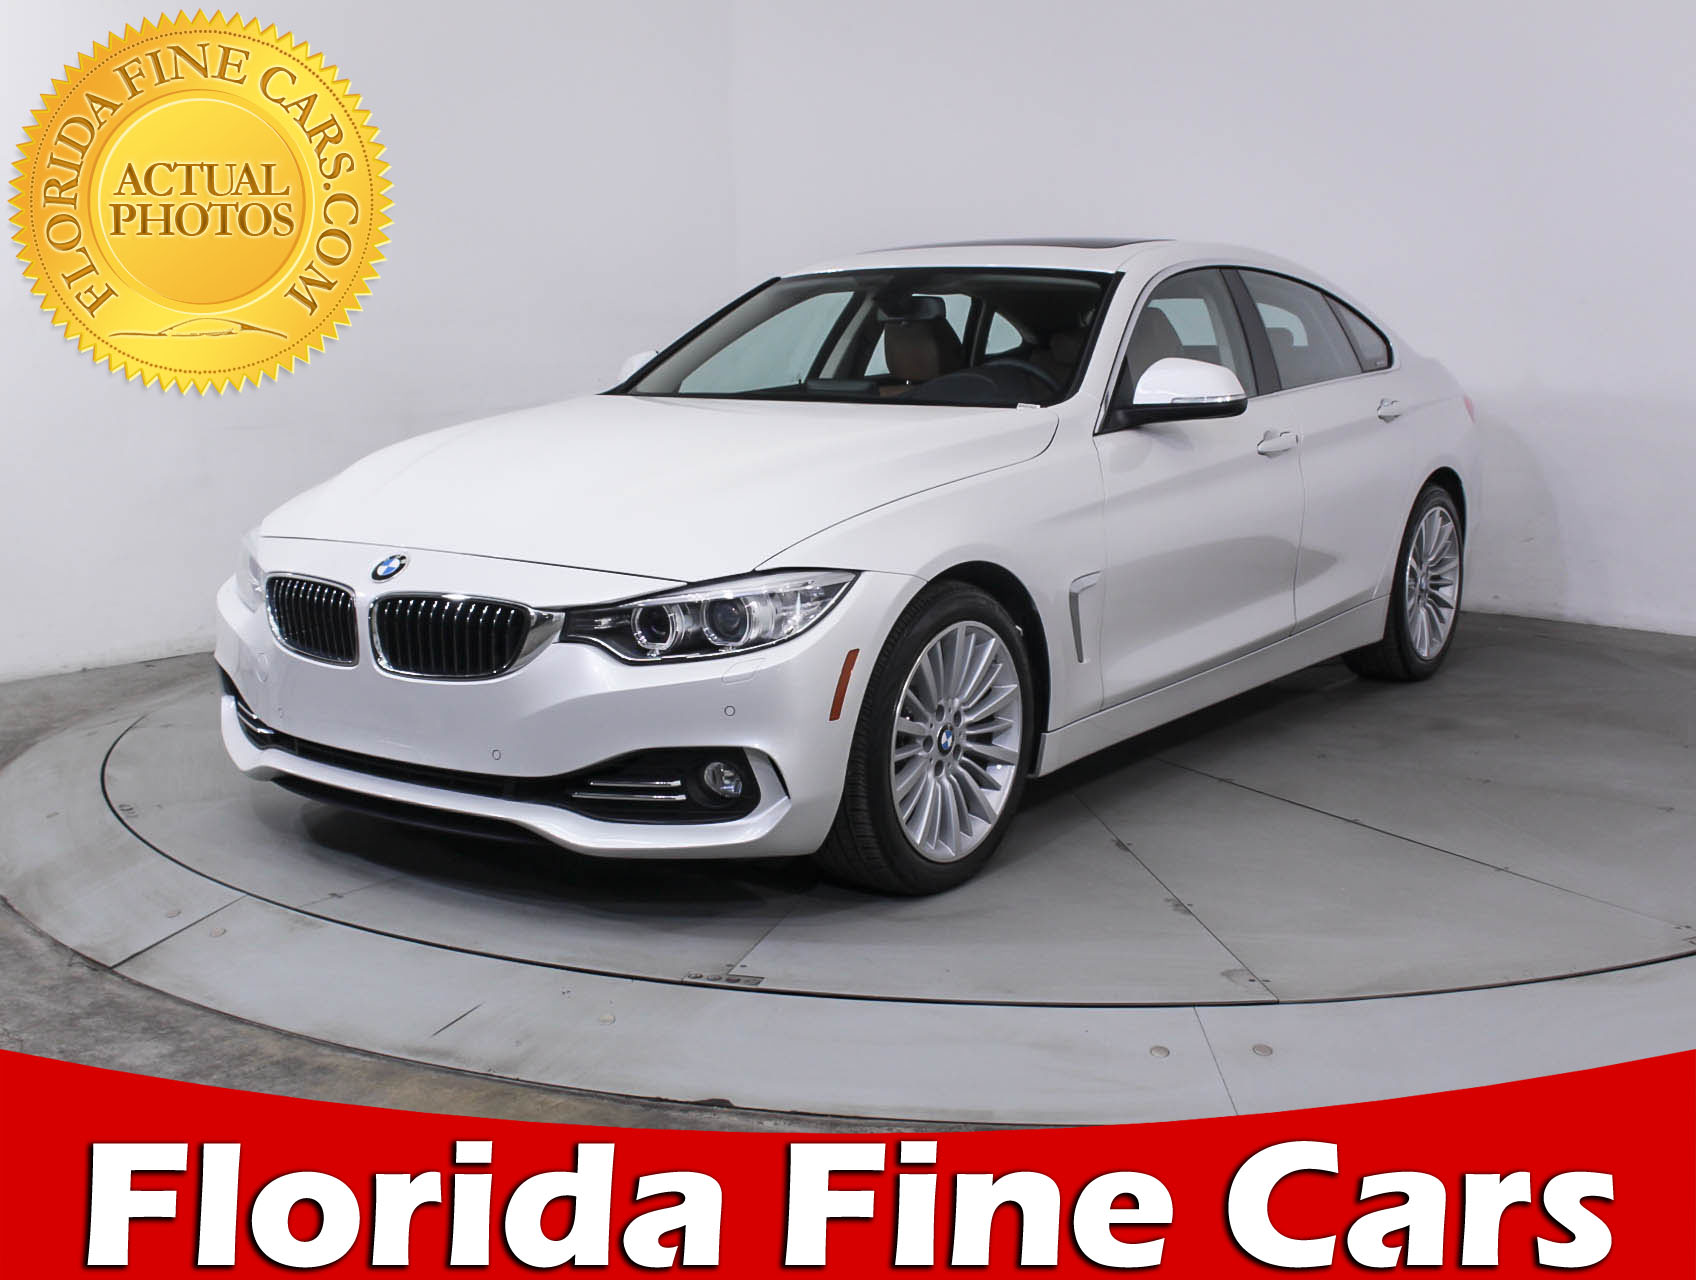 Preowned 2015 BMW 4 SERIES 435i Gran Coupe Msp Sedan BLUE